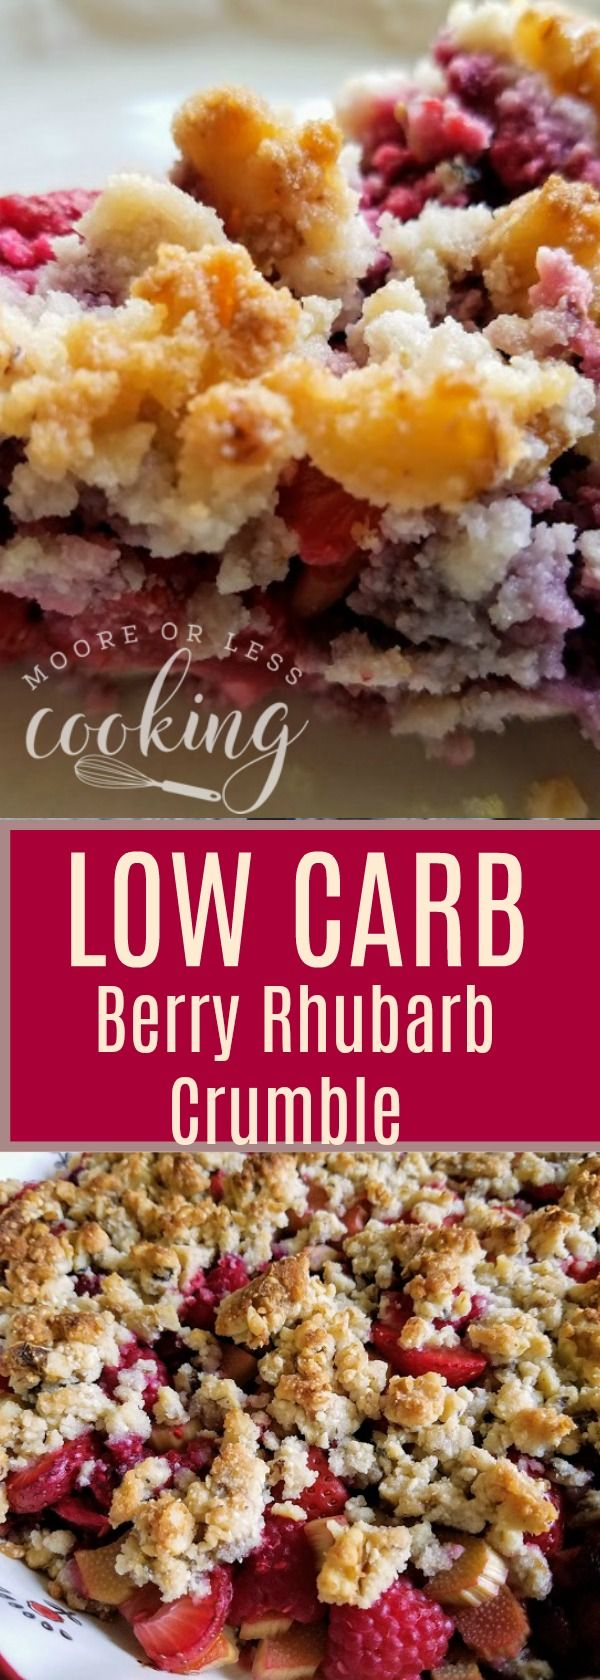 Incredibly delicious Low Carb Strawberry Raspberry Crumble for when you are craving a summer crumble with fresh berries and rhubarb. #lowcarbyum